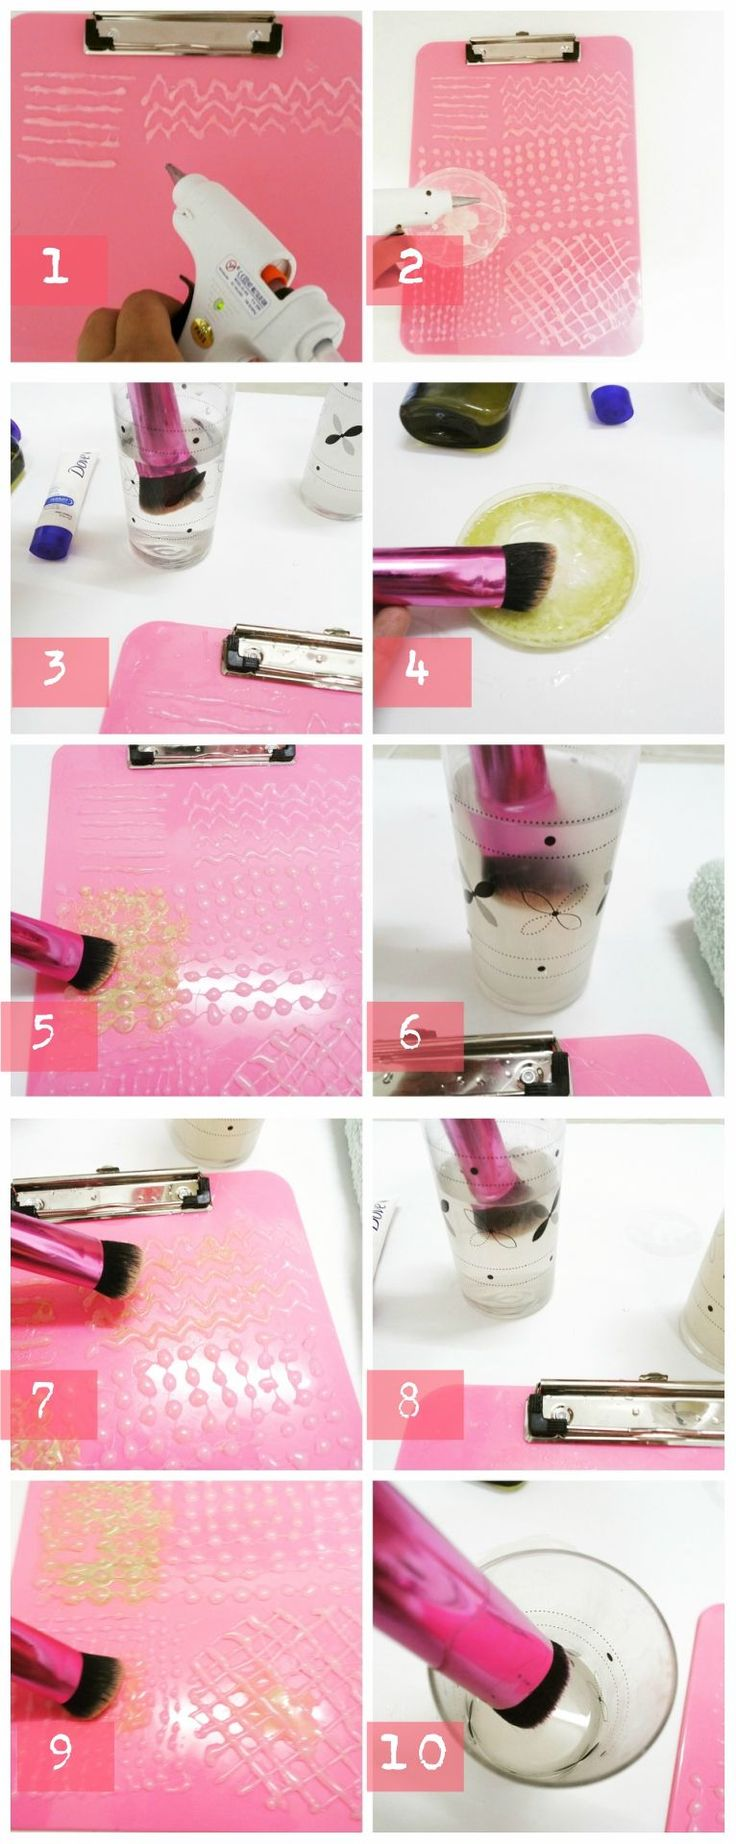 DUPE FOR SIGMA CLEANSING MAT. Learn how to create and use a brush cleansing mat